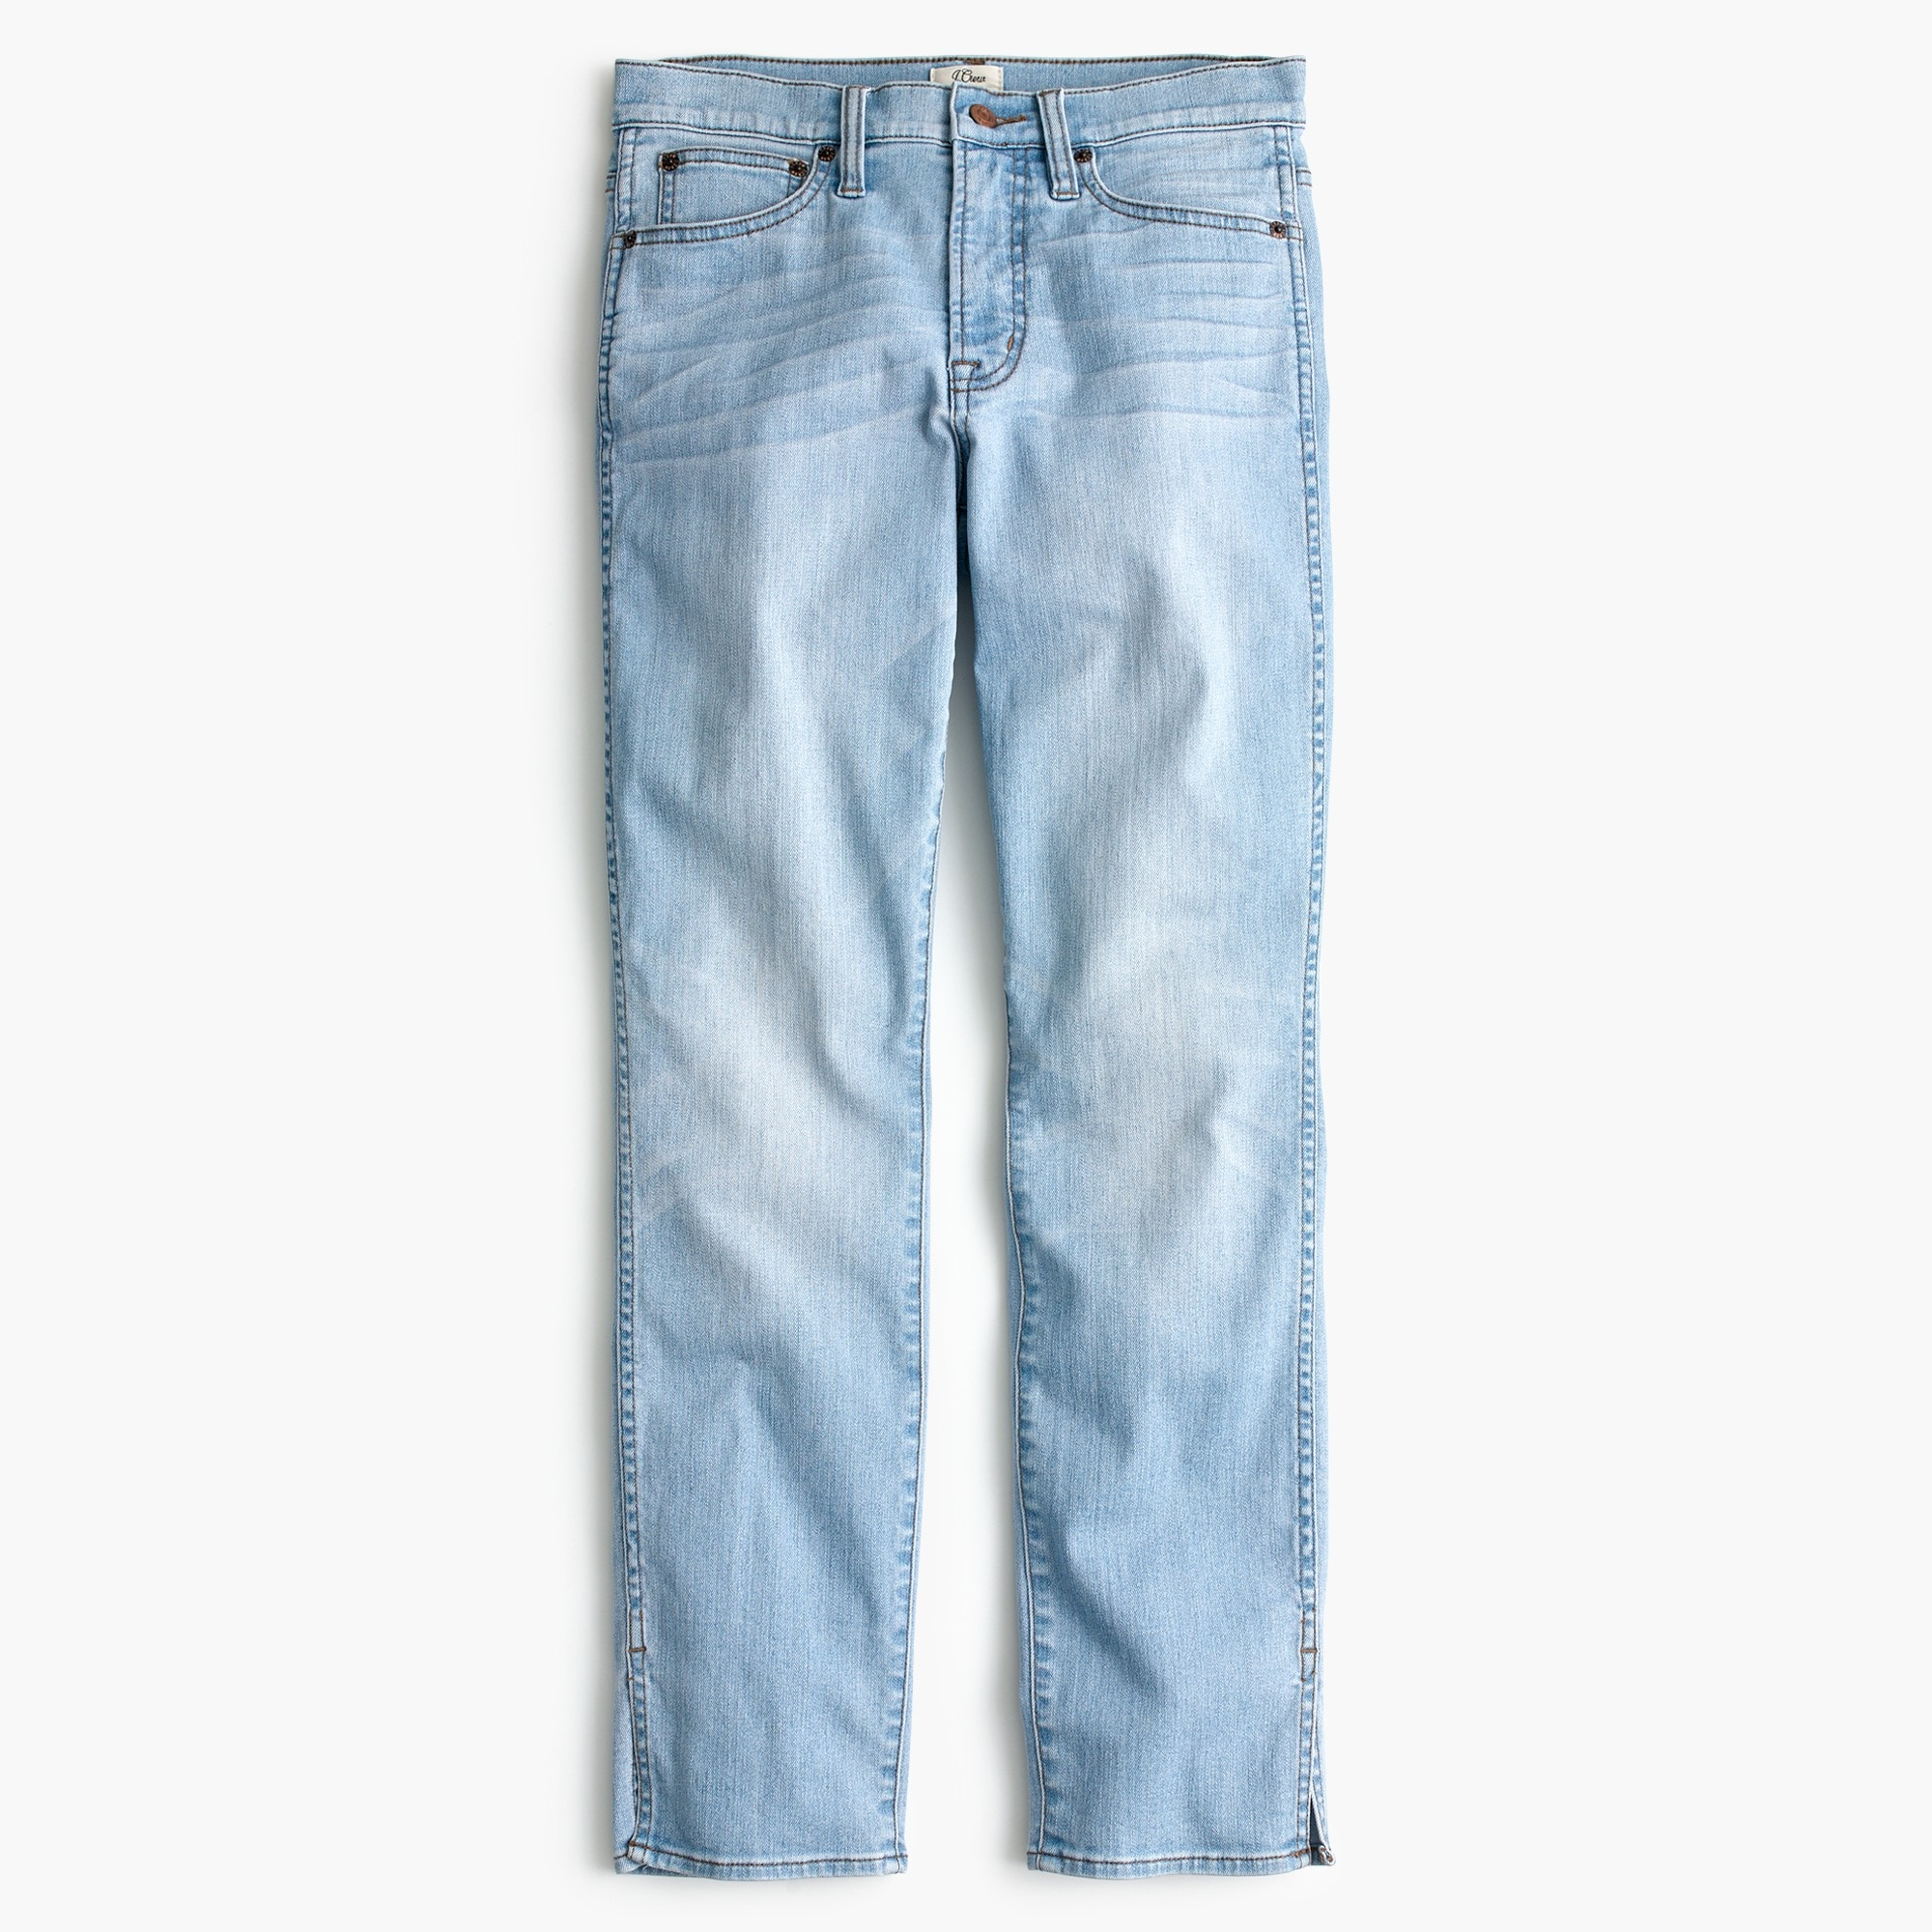 Tall vintage straight jean with slit hems